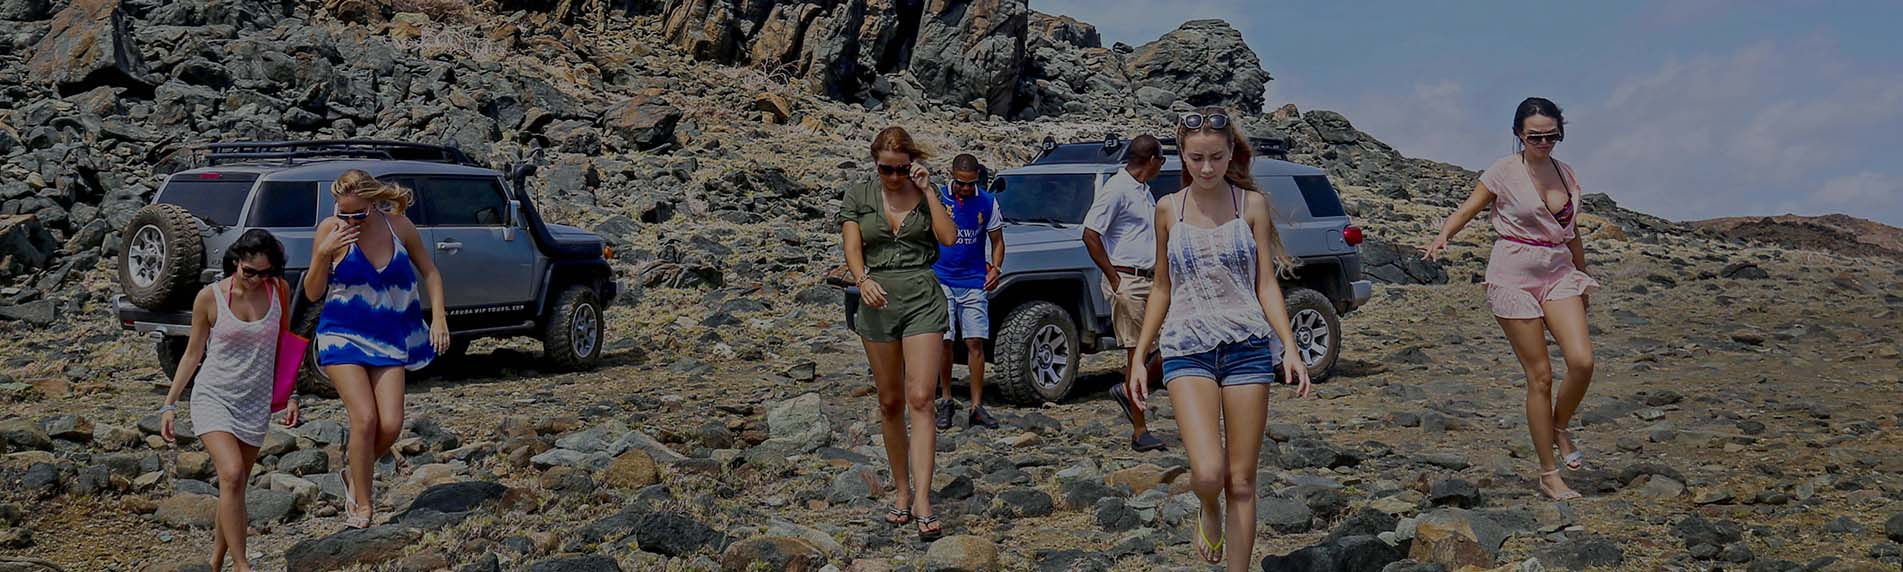 Aruba Private Jeep Tour - Six Hour